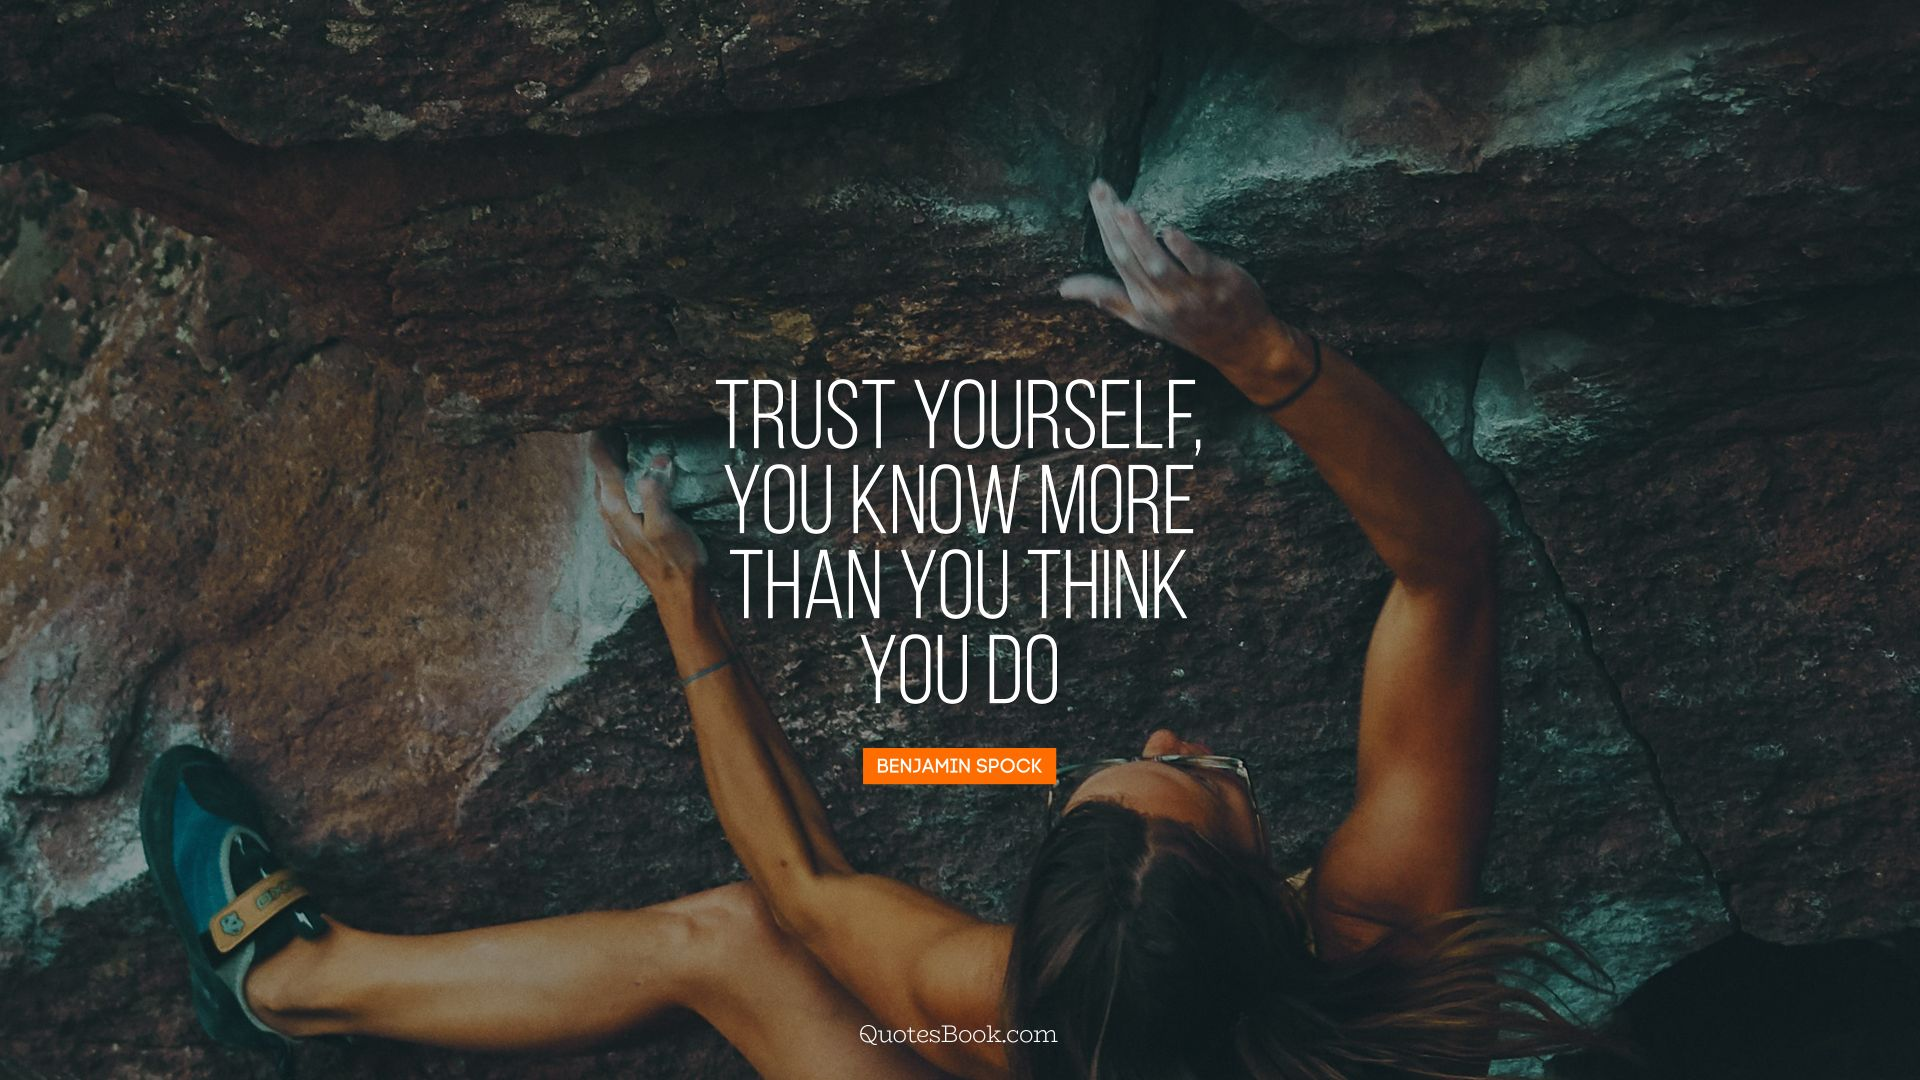 Trust yourself, you know more than you think you do. - Quote by Benjamin Spock